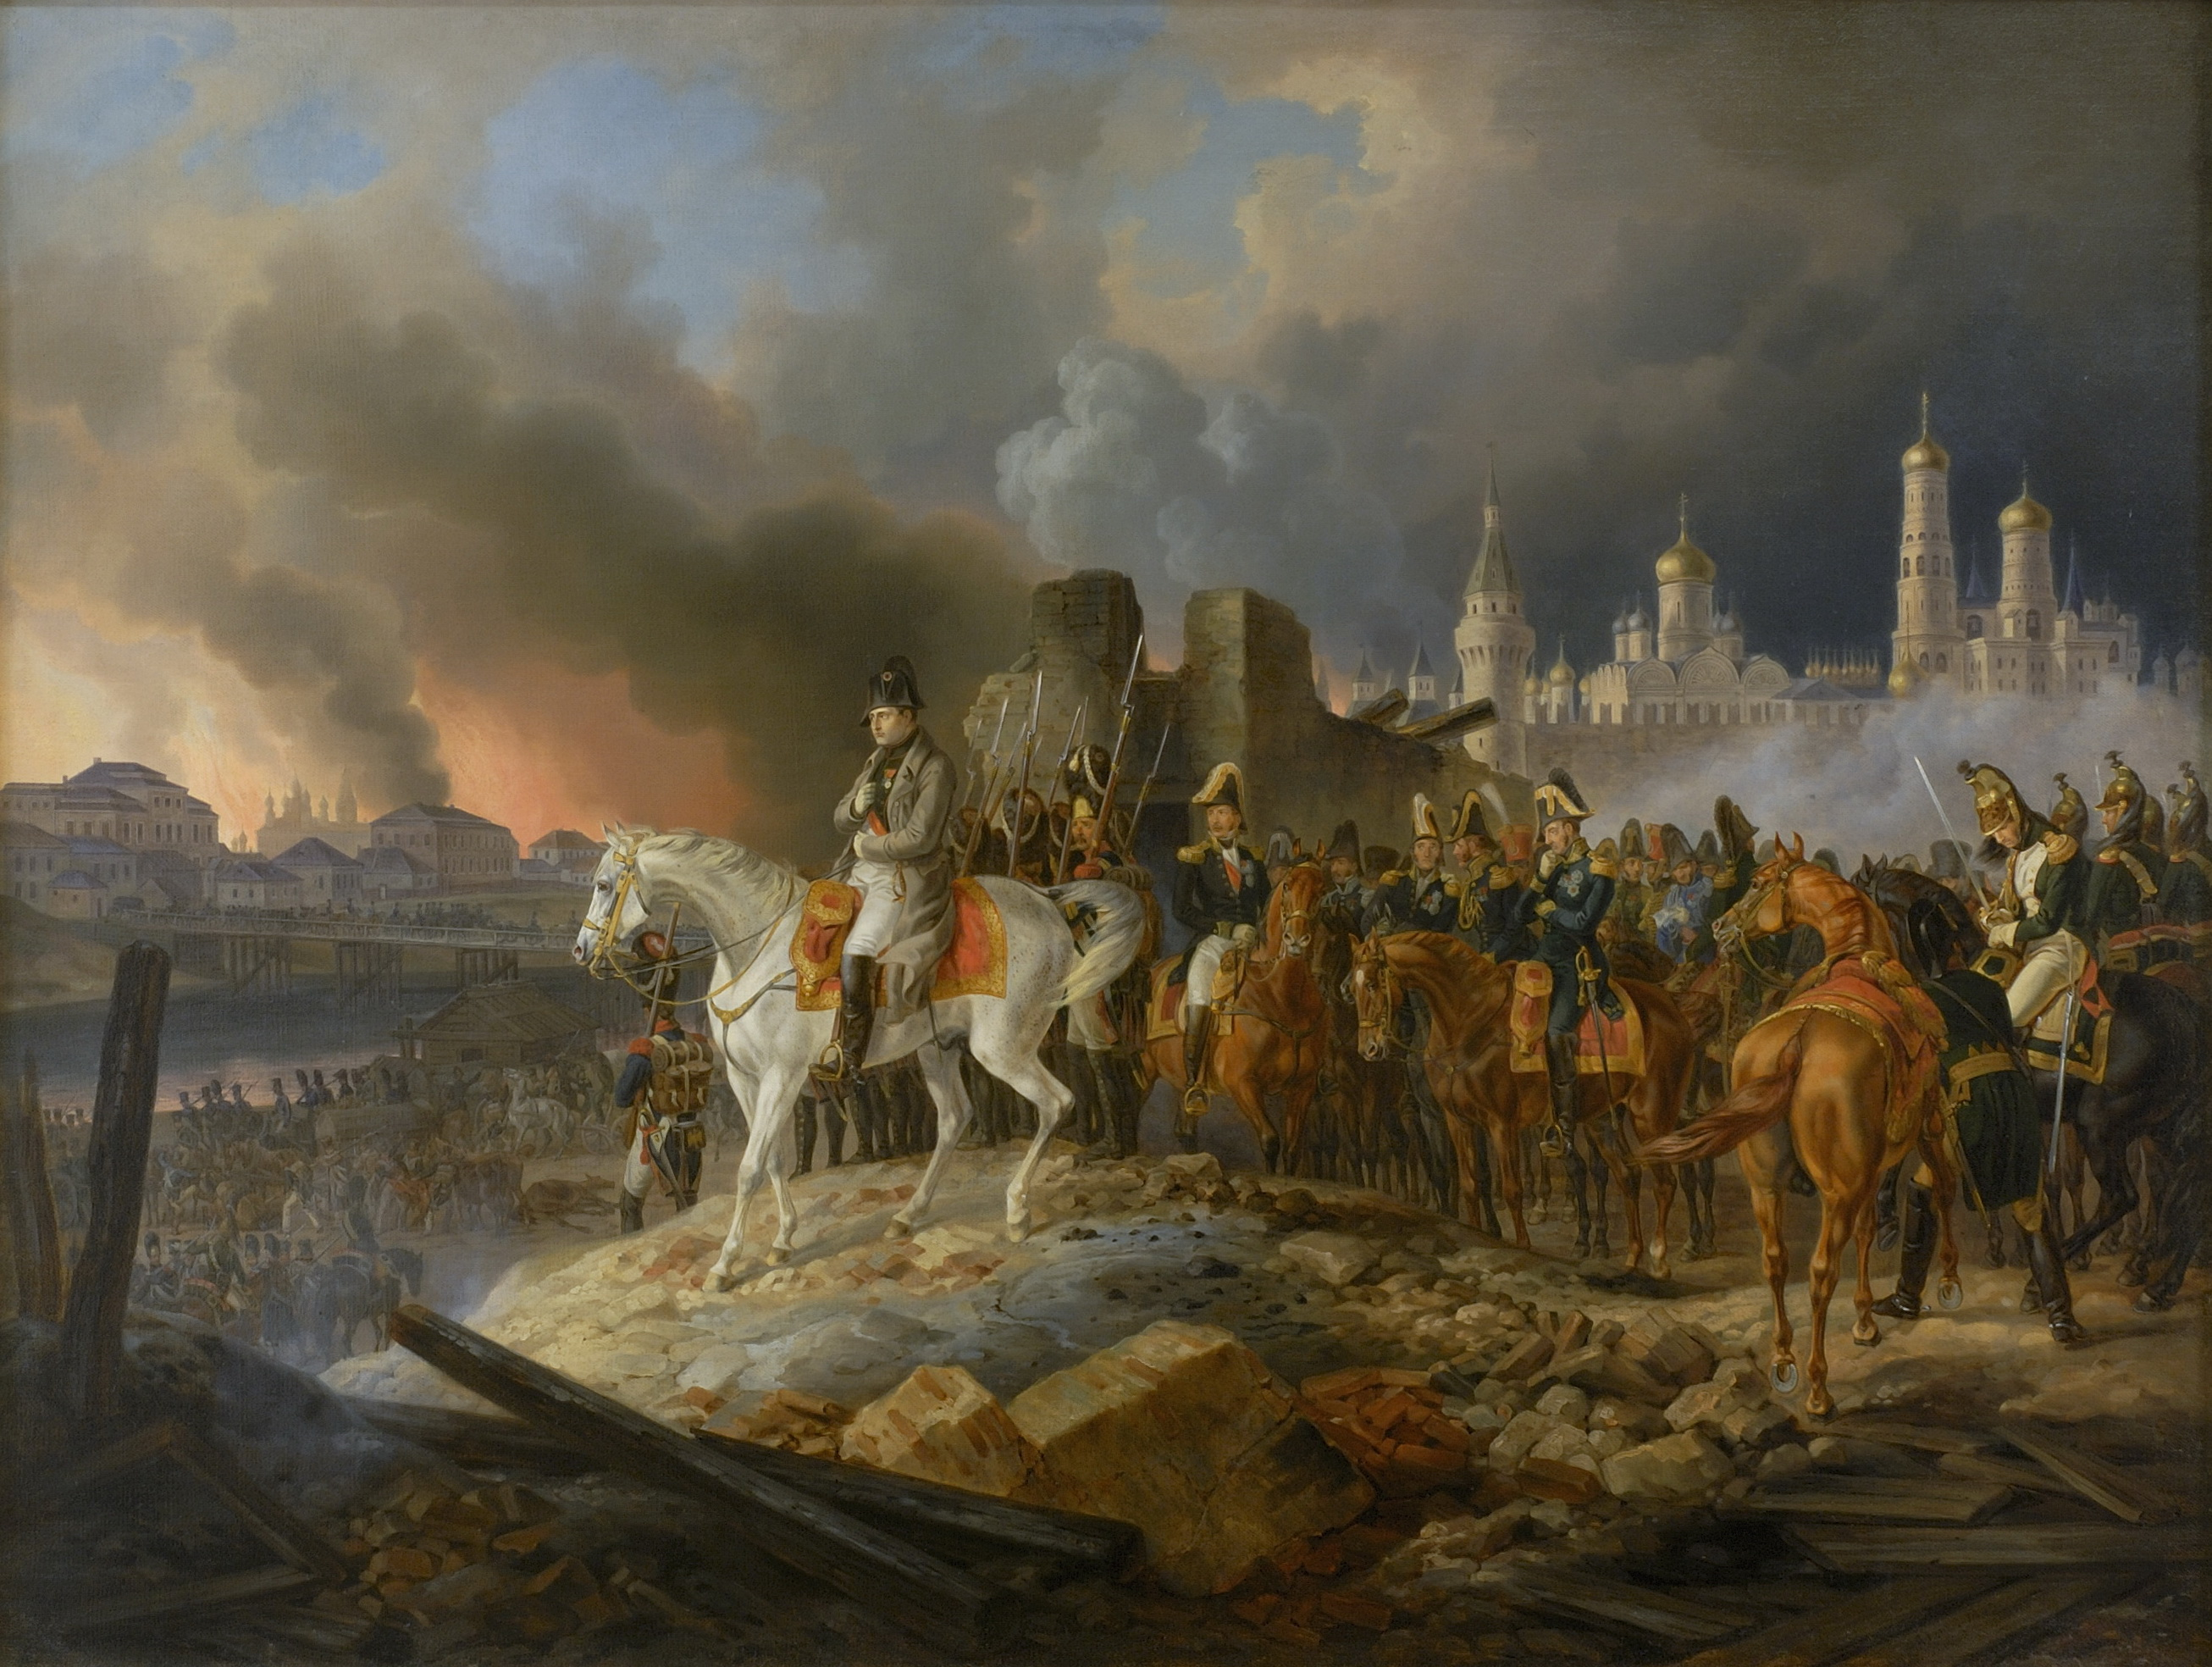 Albrecht, Adam. Napoleon in burning Moscow. 1841.